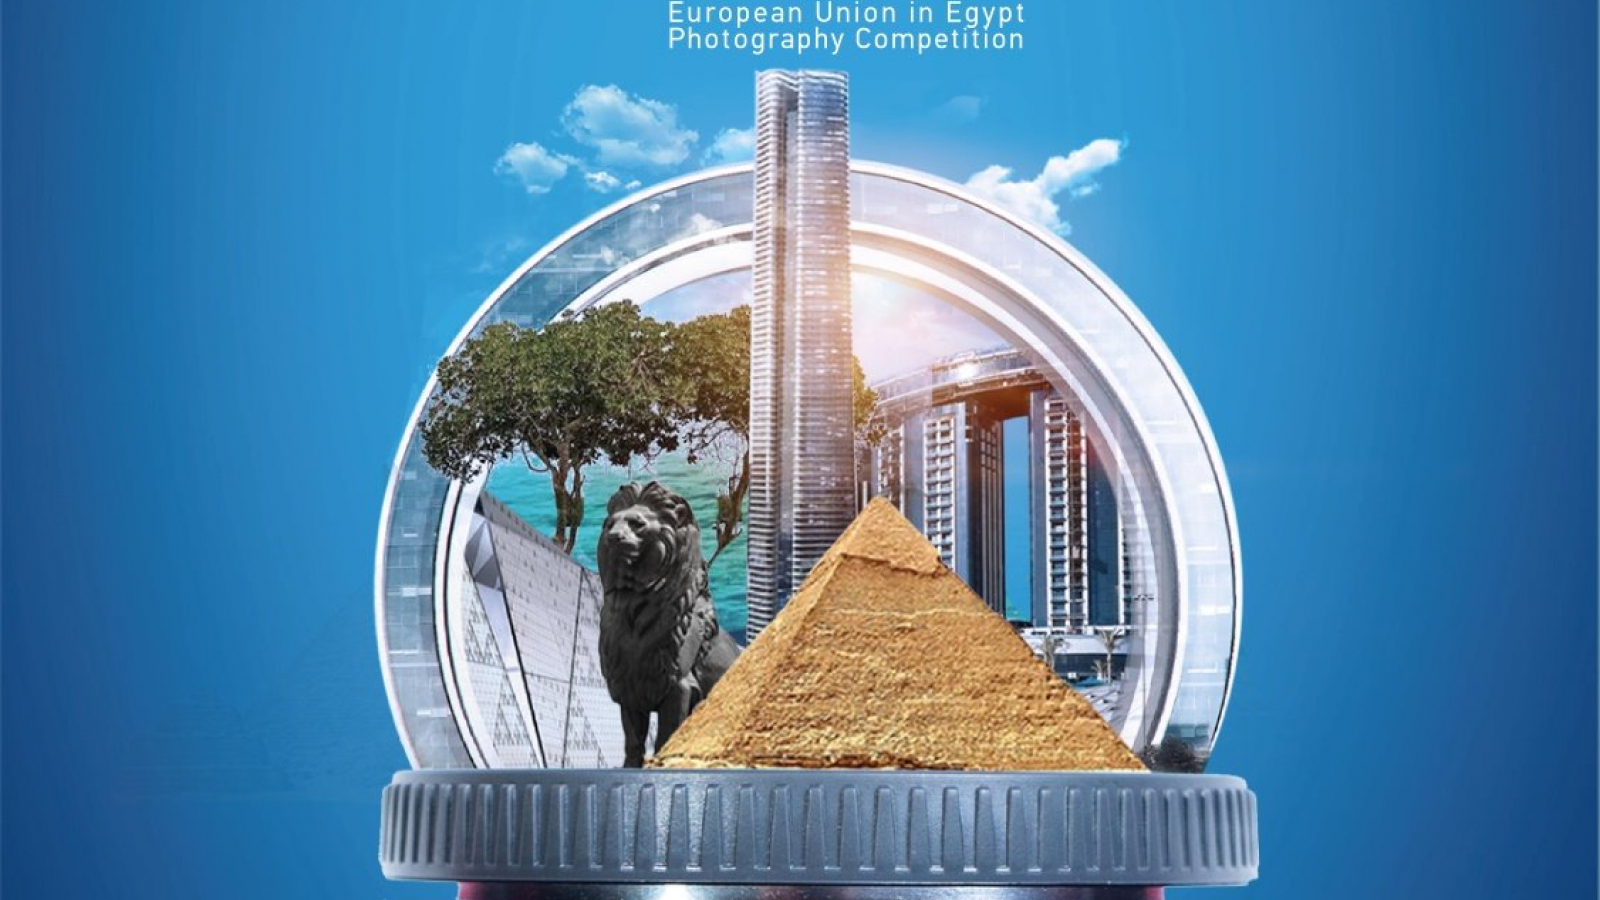 European Union in Egypt Photography Competition